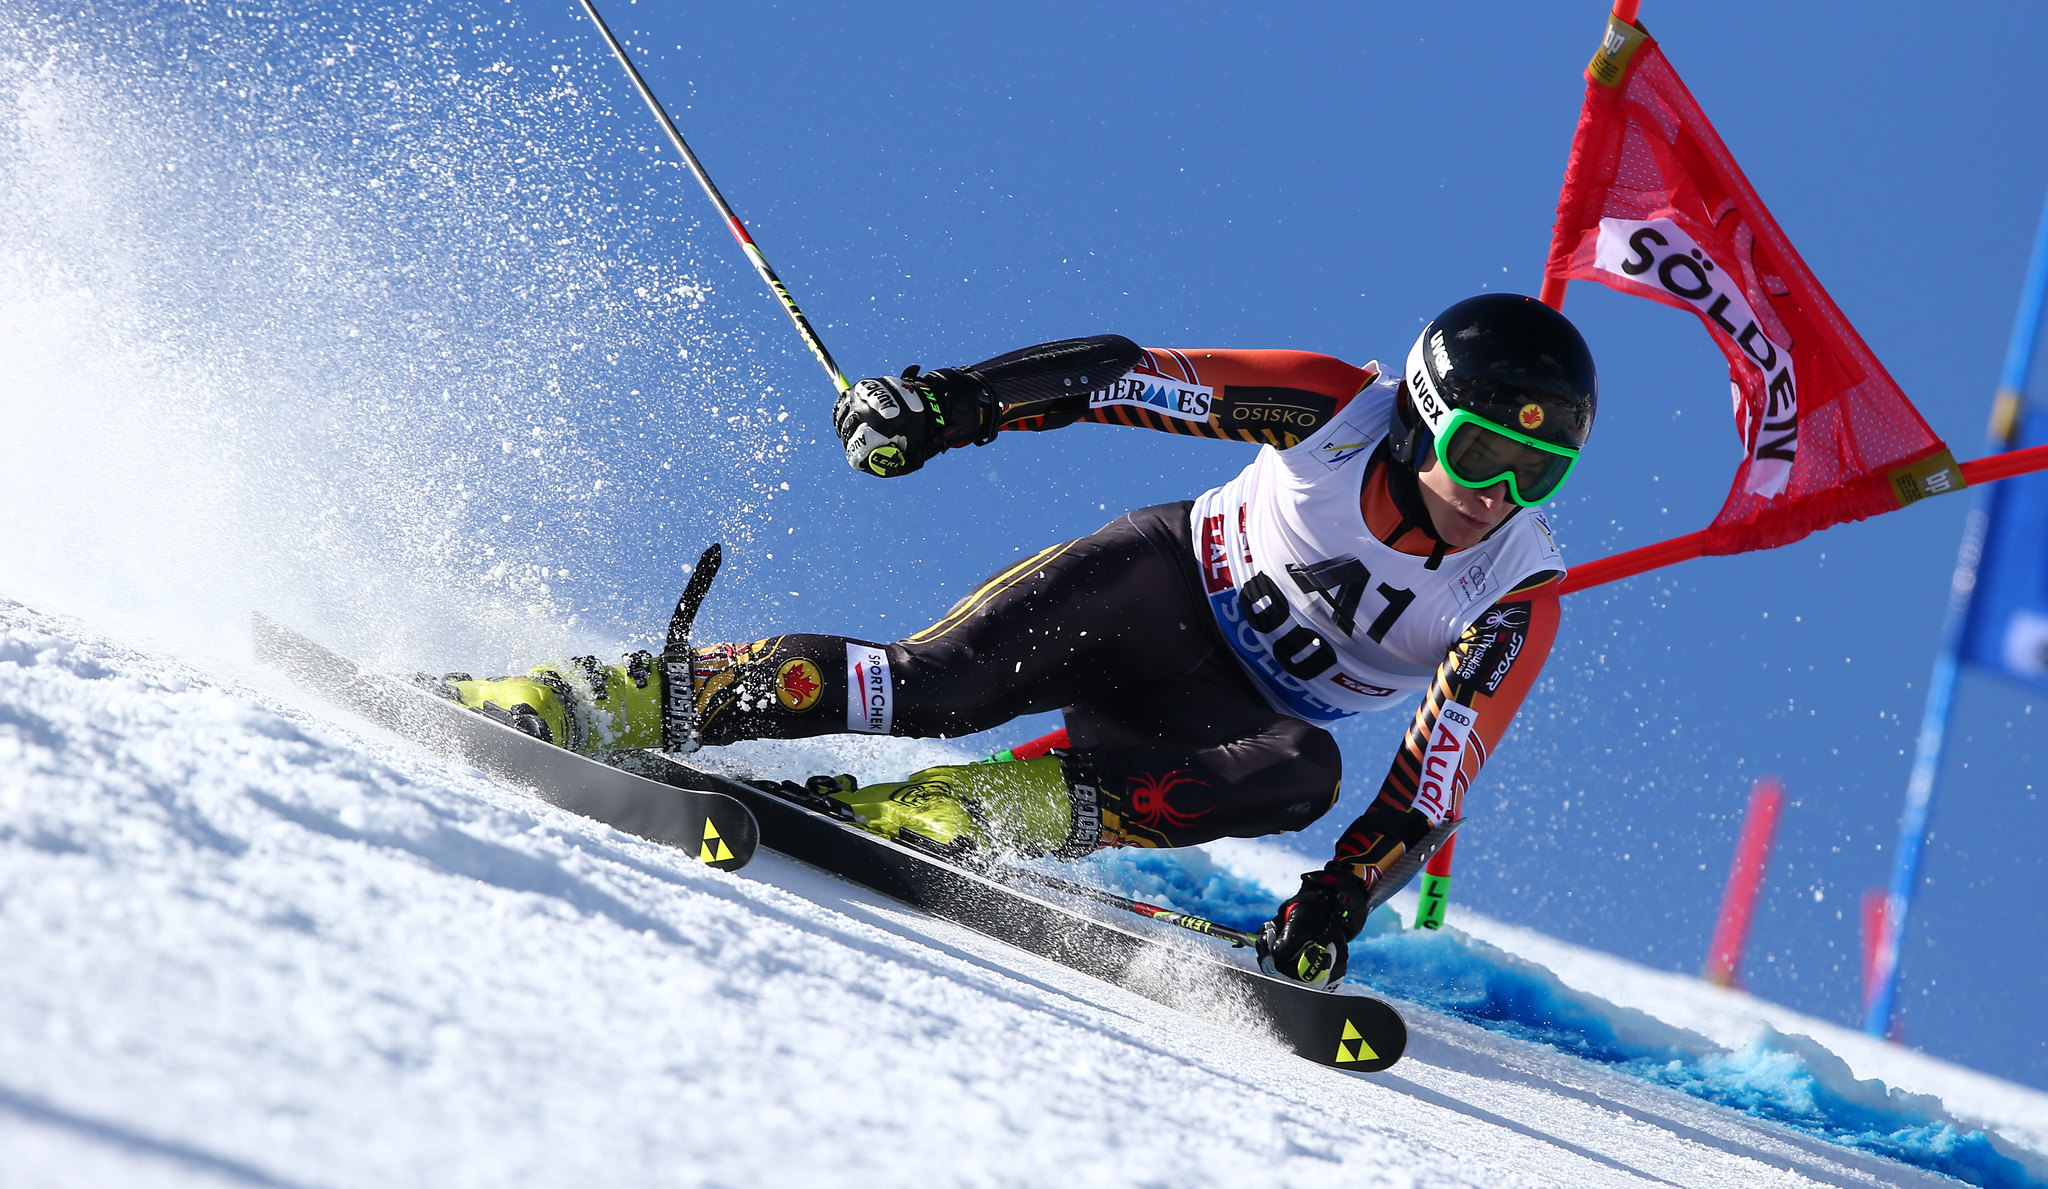 Erik Read navigates a gate in the first giant slalom event of the 2013-14 season in Solden, AUT.